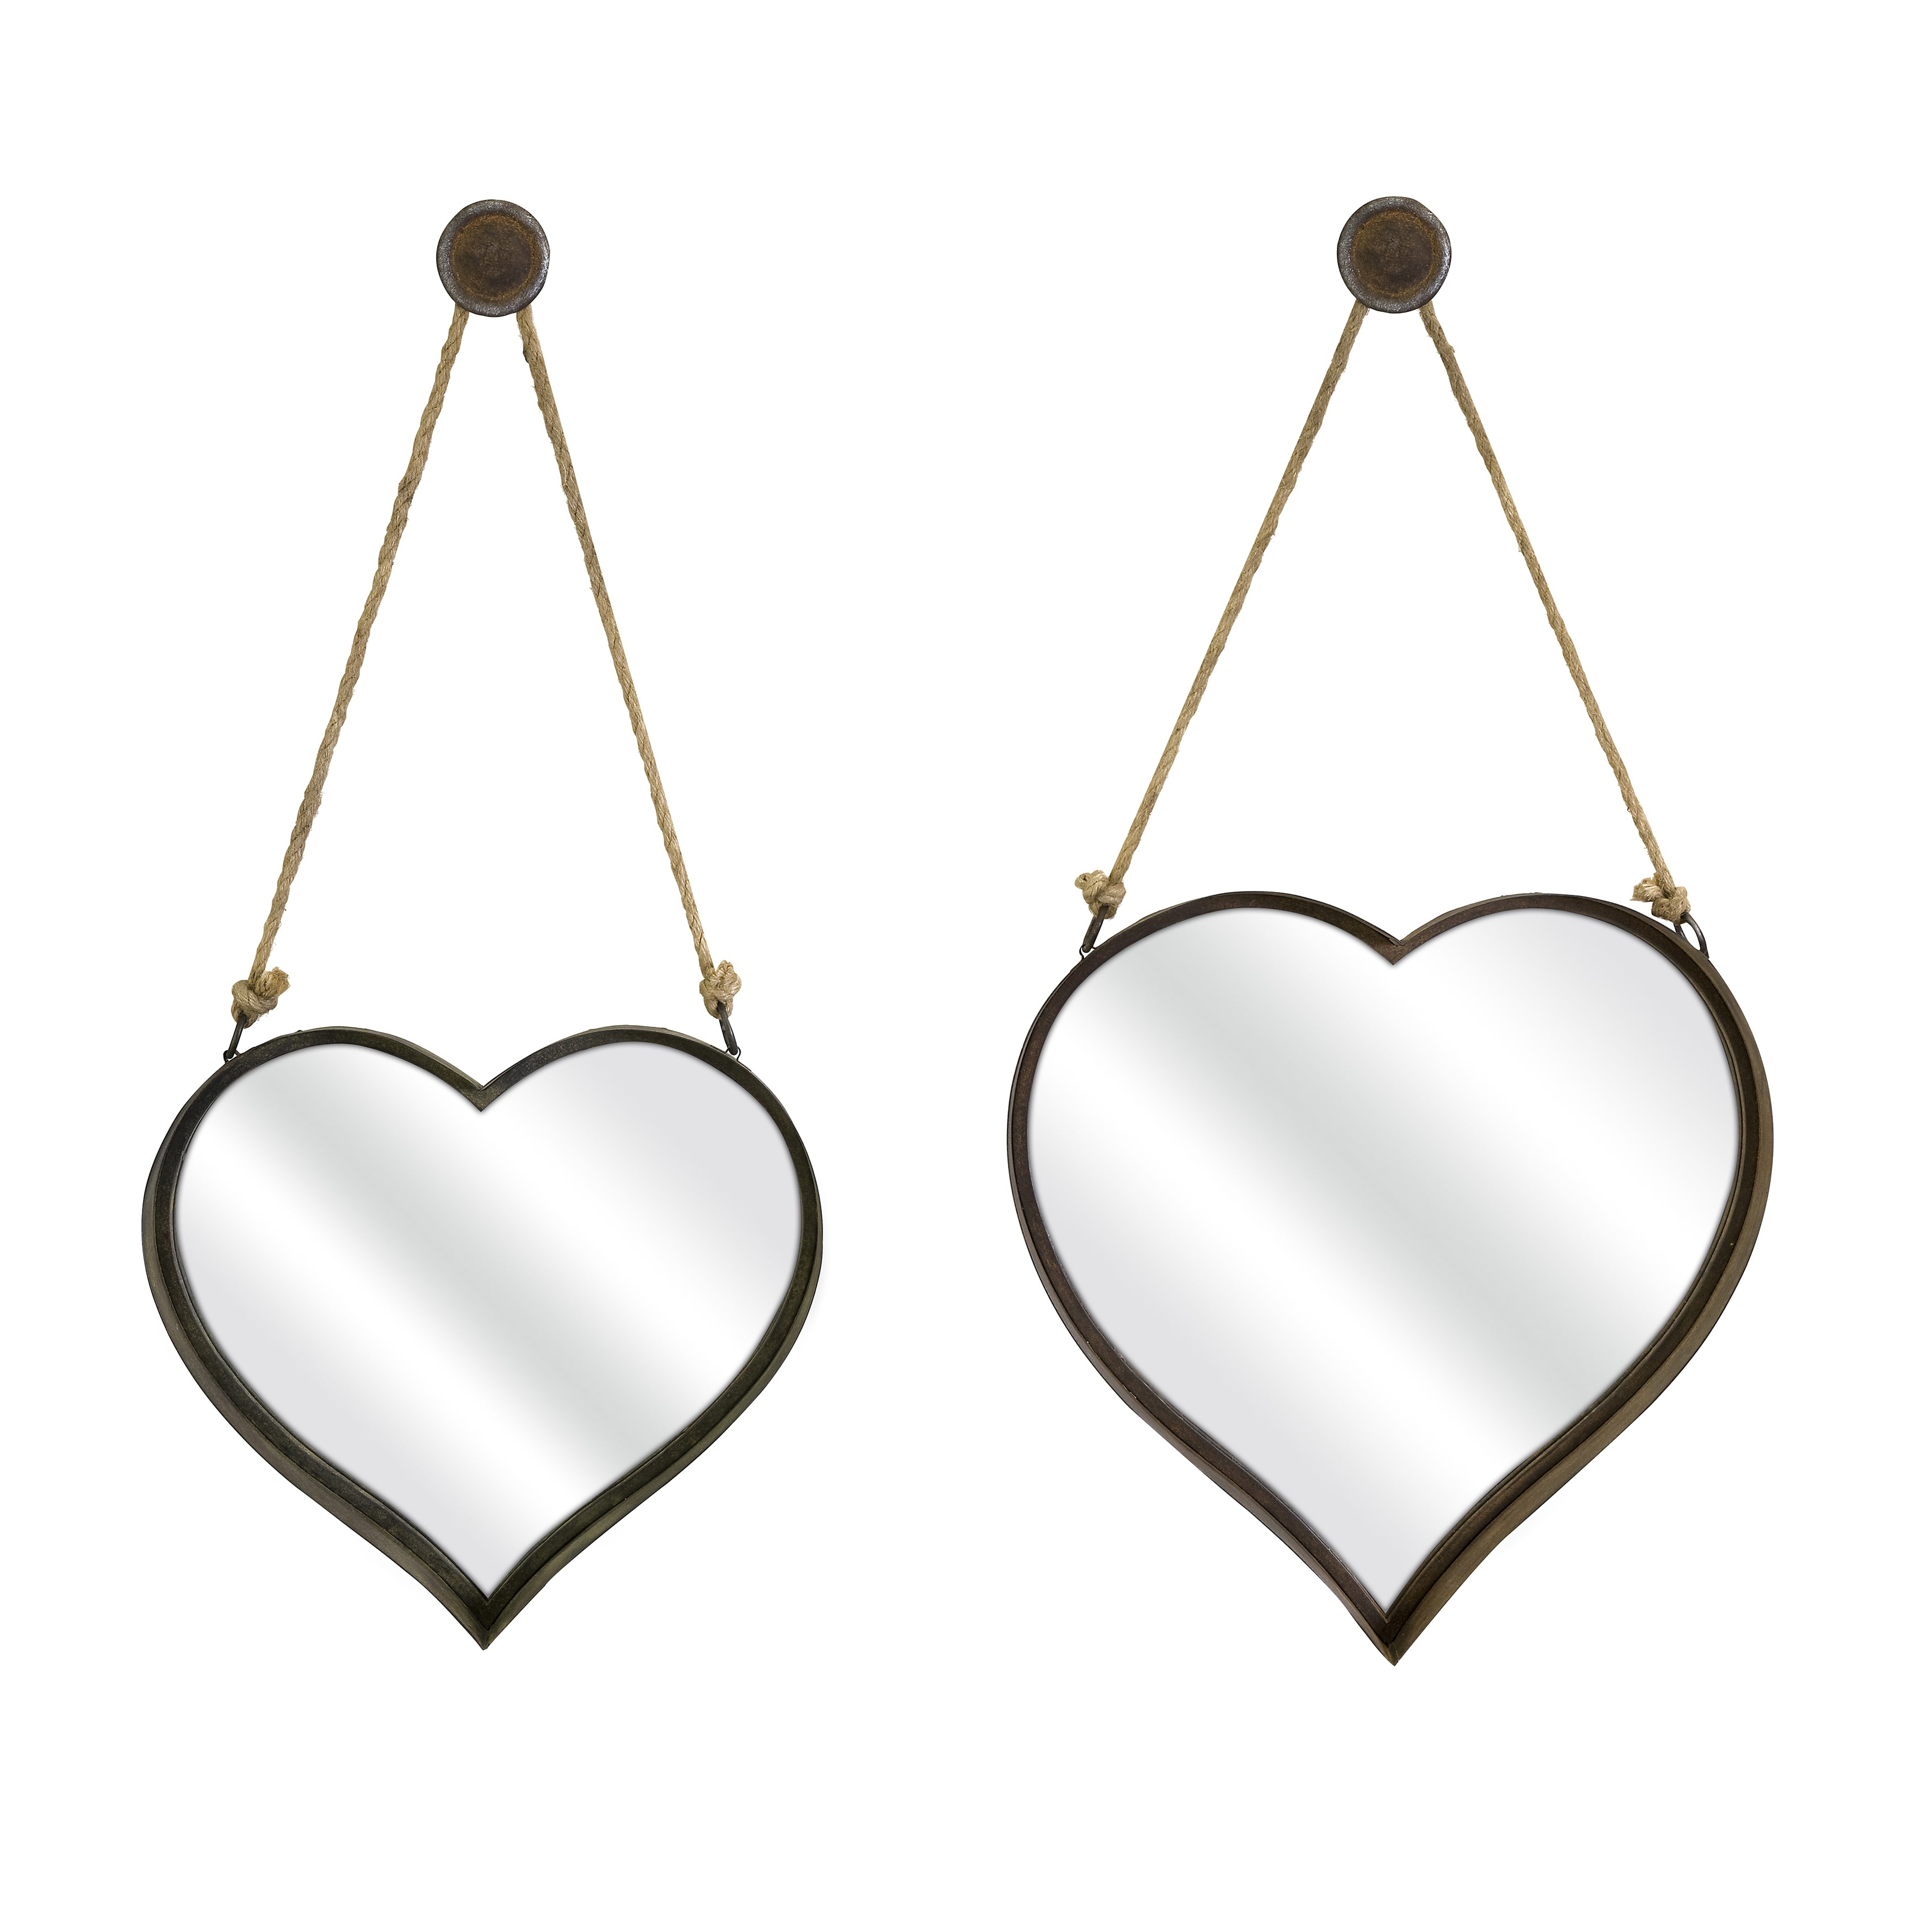 Heart Shape Wall Mirrors – Set Of 2 Throughout 2 Piece Heart Shaped Fan Wall Decor Sets (View 4 of 30)